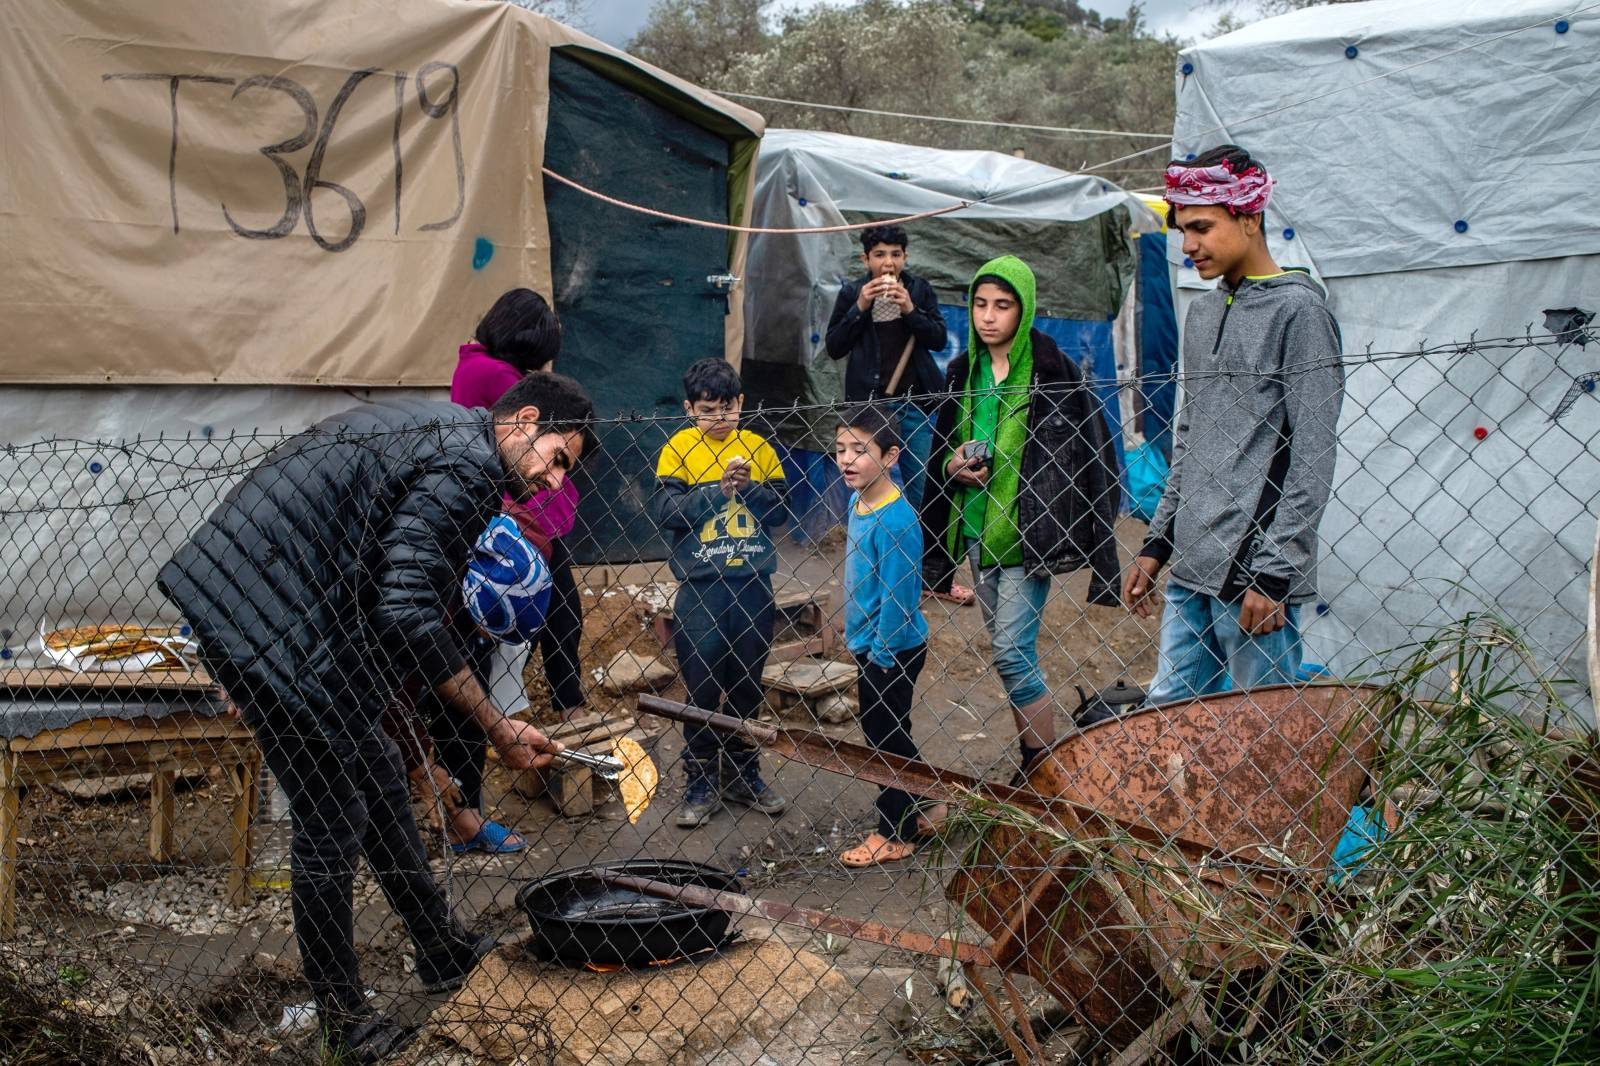 Refugee camp on Lesbos after riots